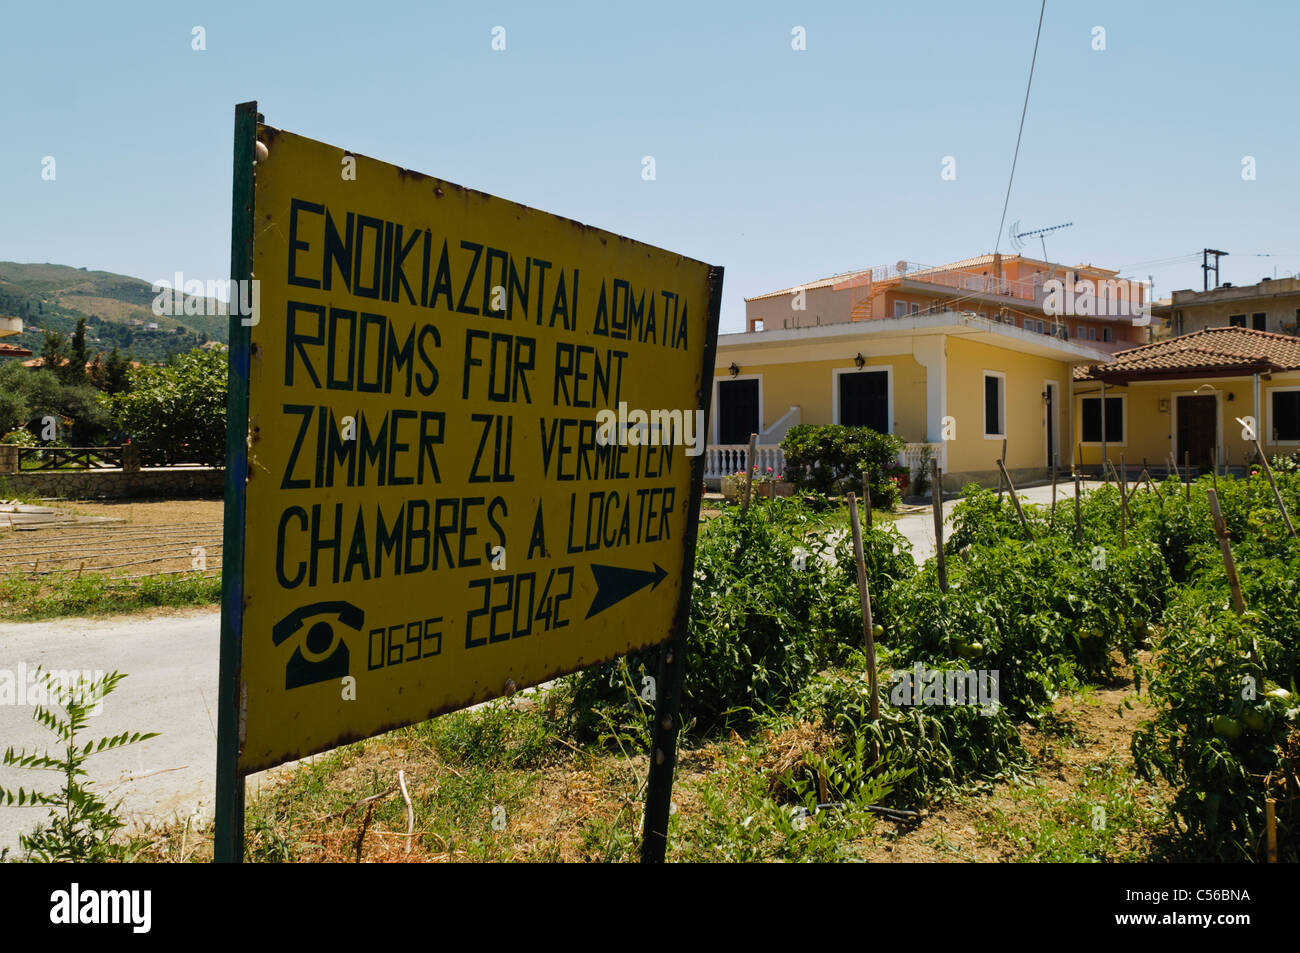 Multilingual sign advertising rooms for rent in Greek, English, German and French - Stock Image